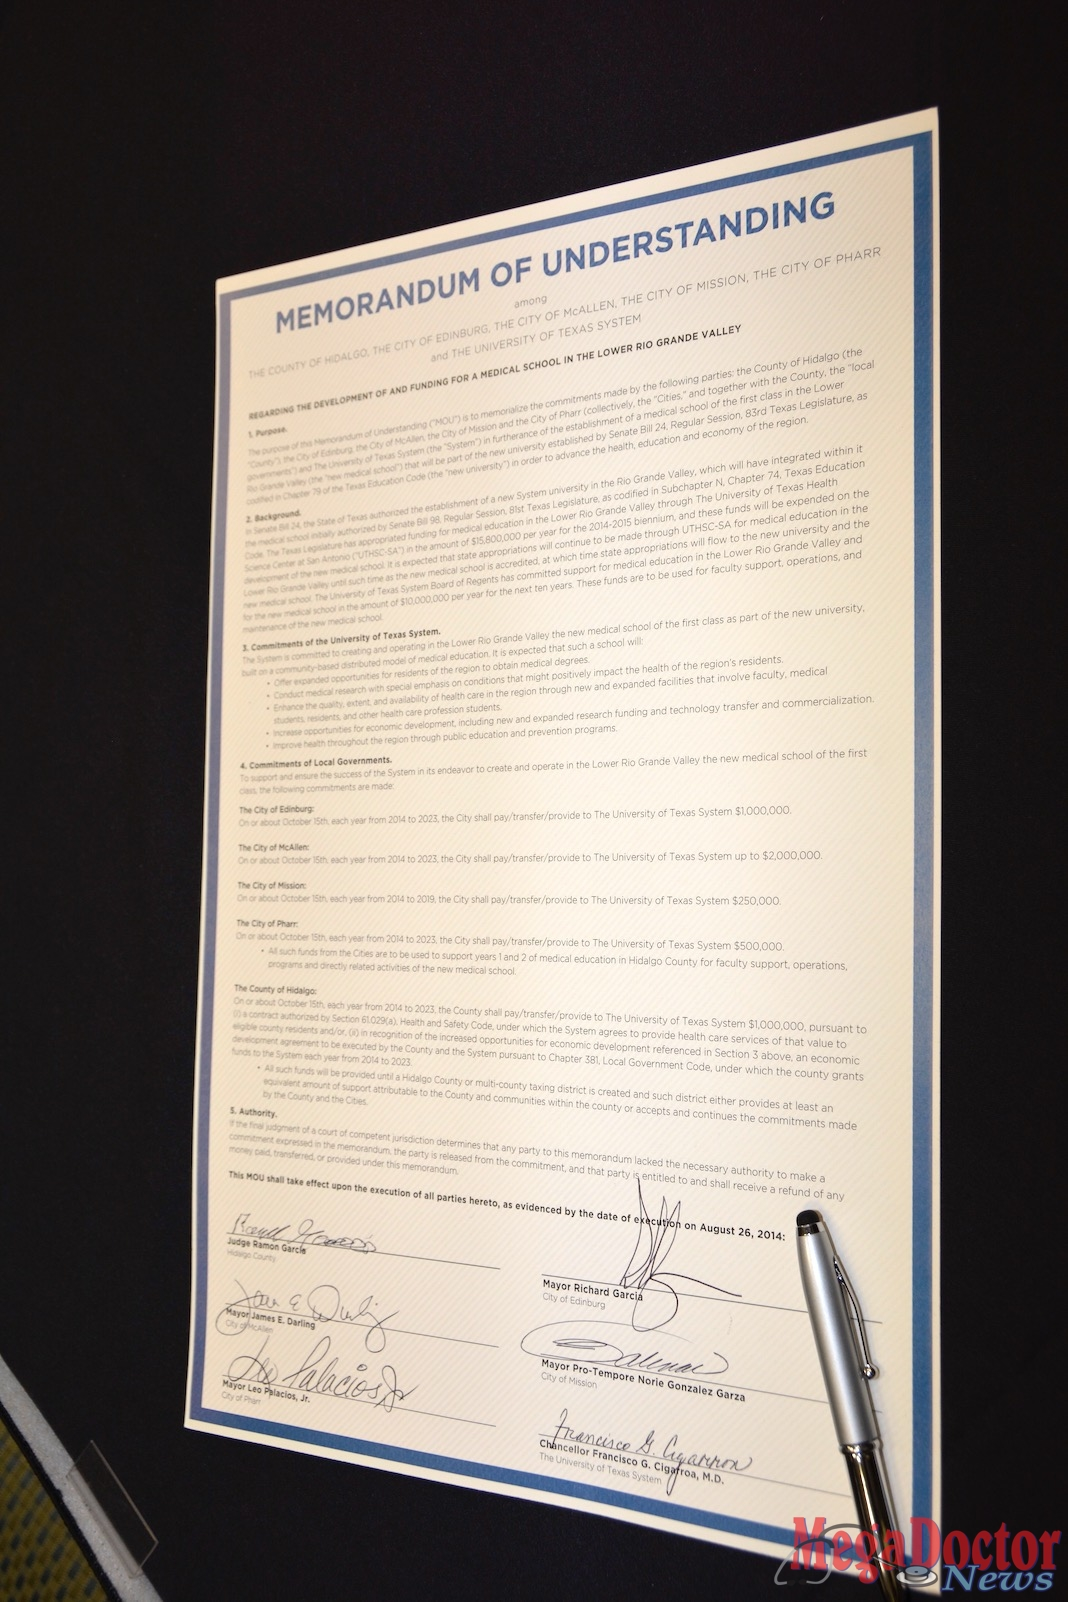 This is the Memorandum of Understanding executed by six leaders committing to fund the school of medicine. Photo by Roberto Hugo Gonzalez August 2014